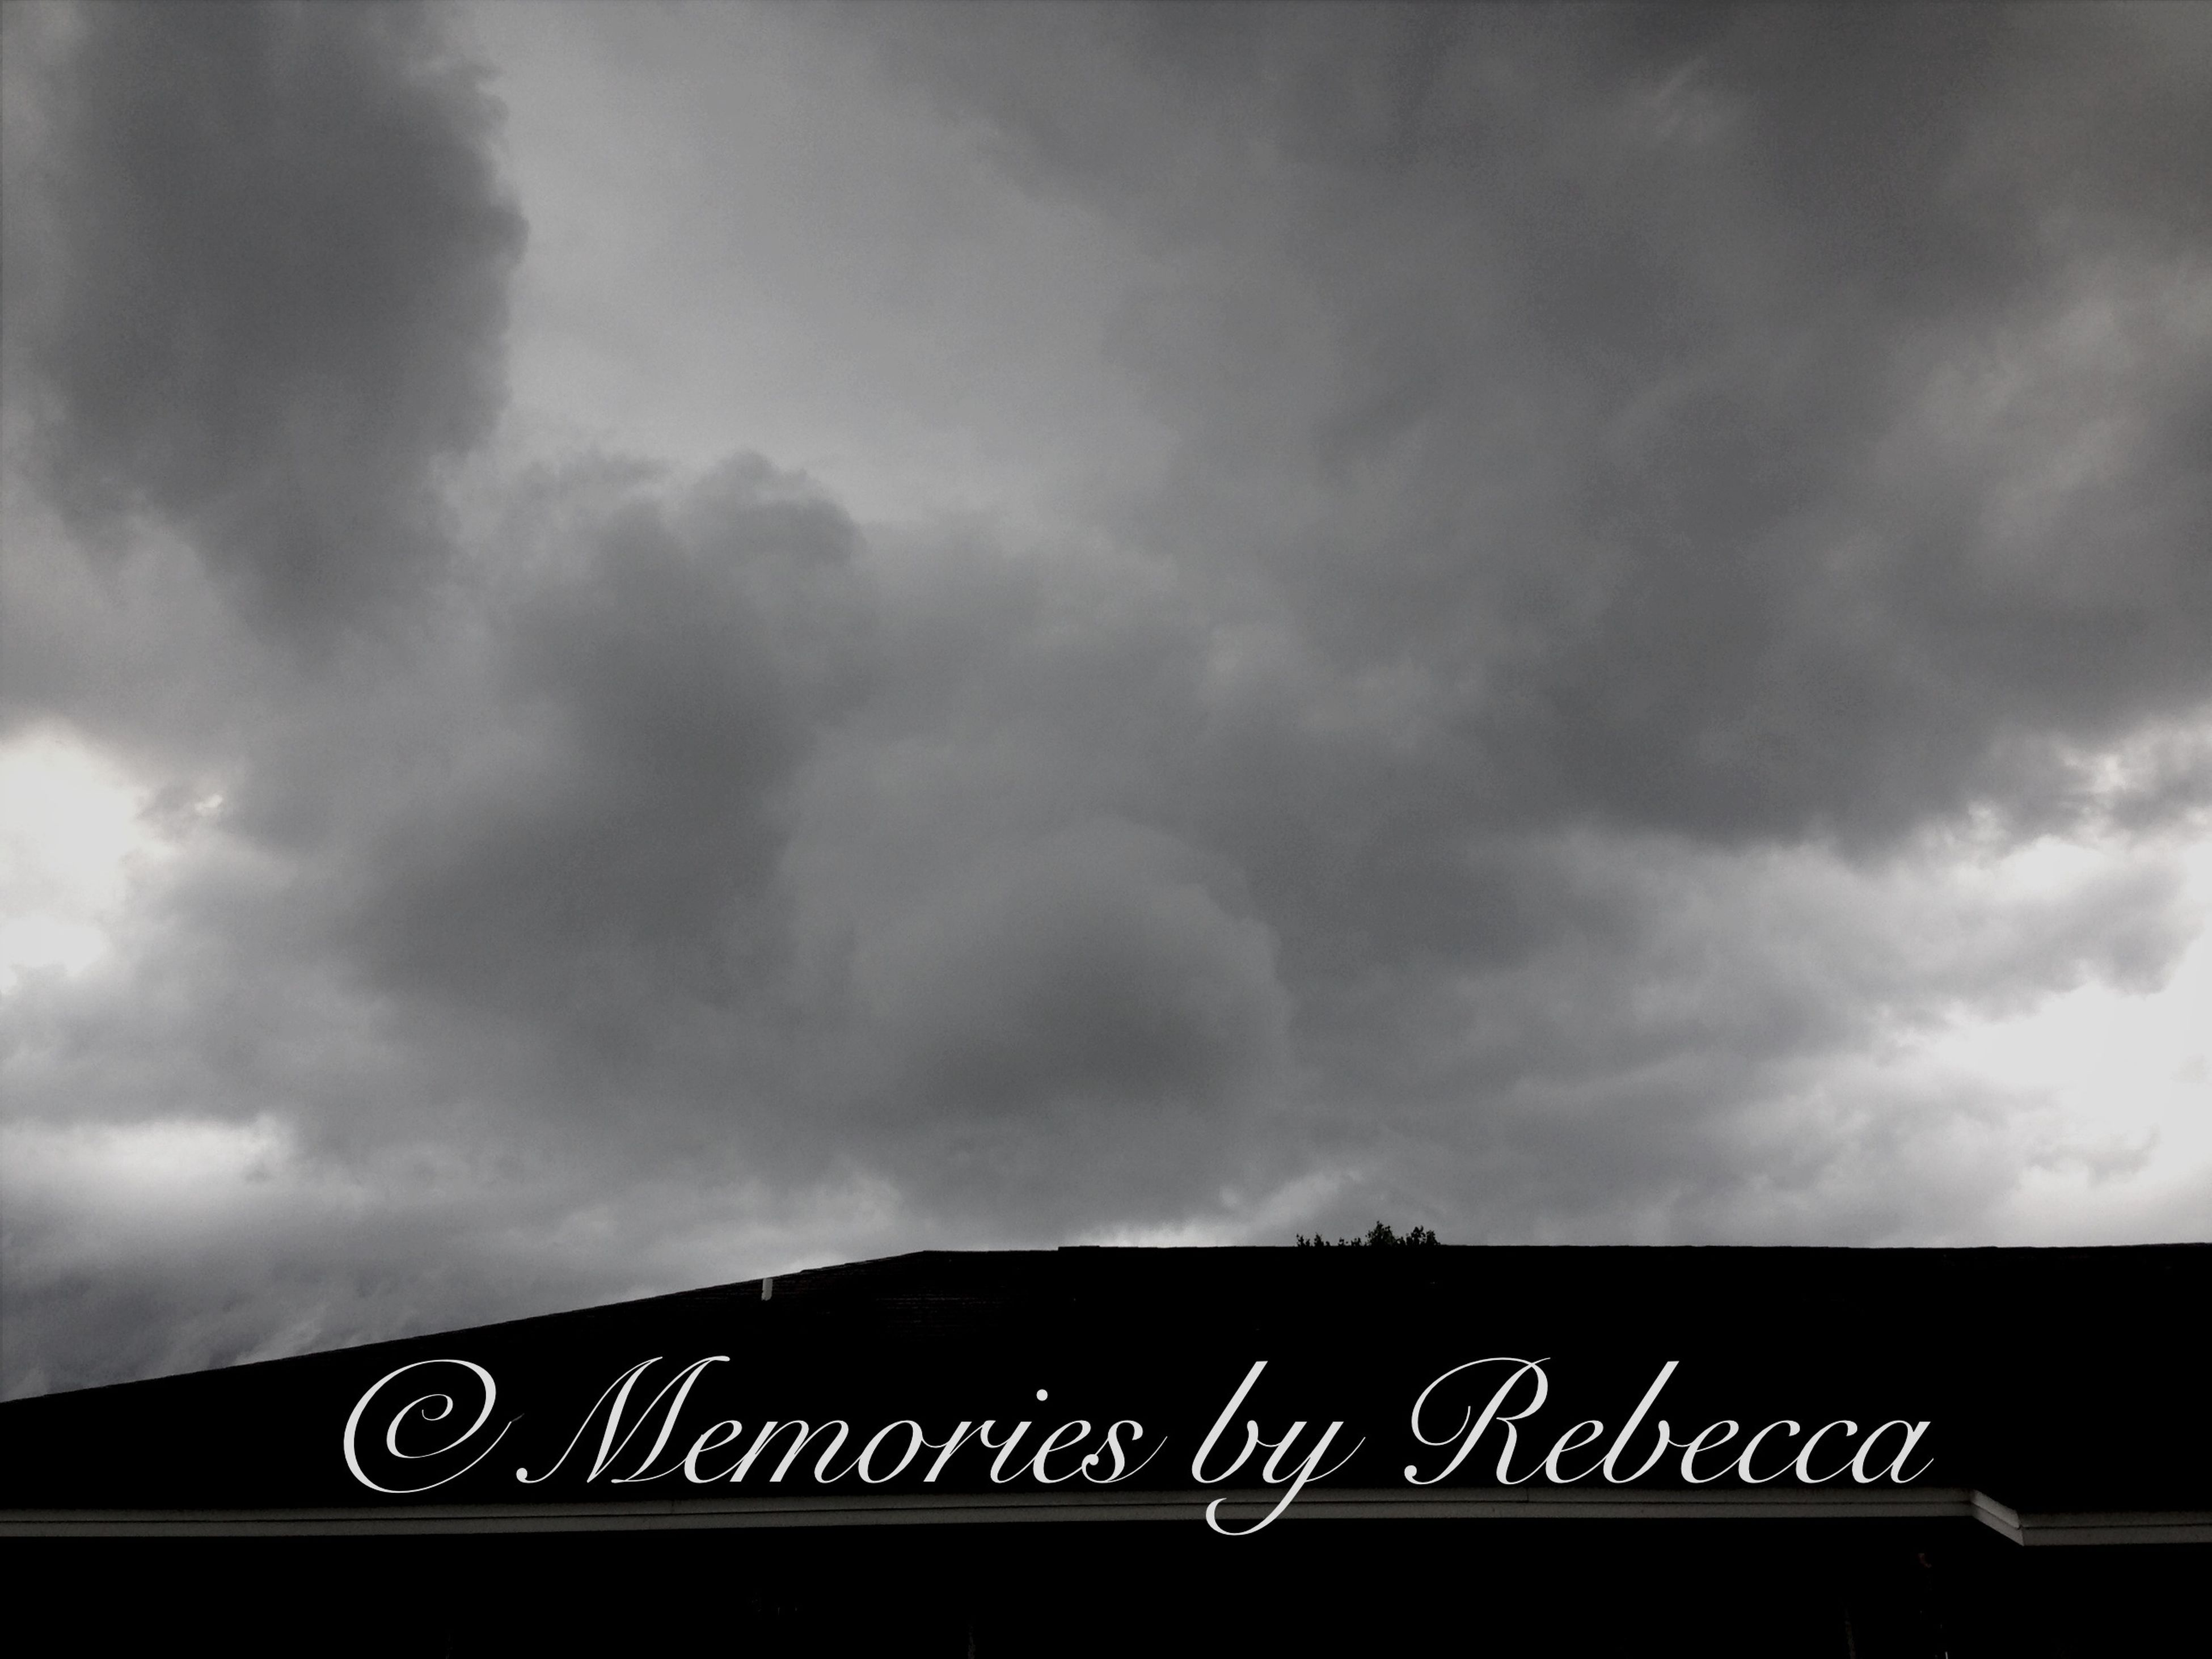 sky, cloud - sky, cloudy, low angle view, railing, transportation, cloud, text, overcast, weather, western script, silhouette, dusk, communication, outdoors, storm cloud, sign, day, built structure, no people